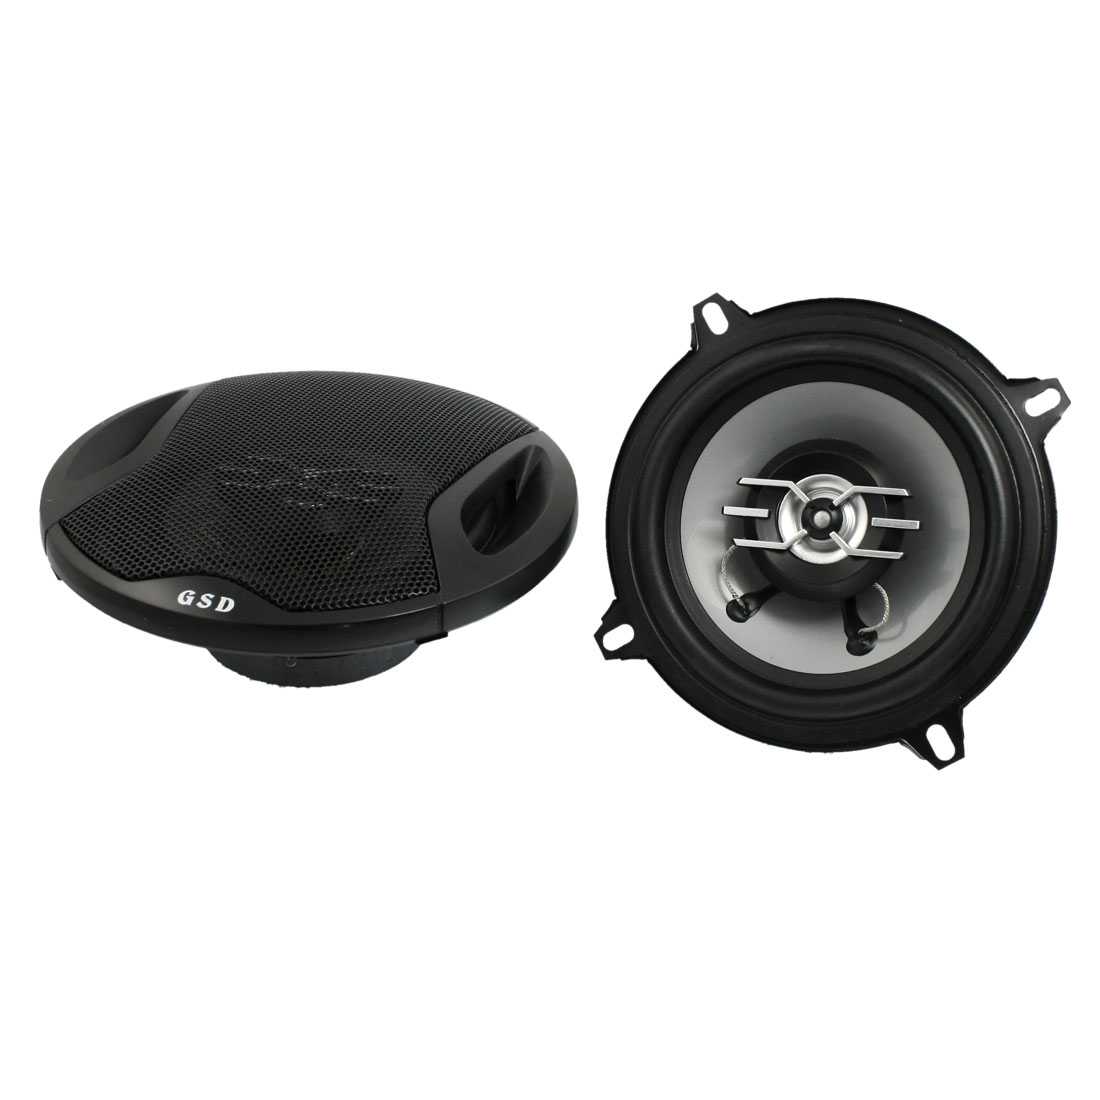 "5"" Diameter 500W 2-way Two Coaxial Car Audio Speakers Black 2 Pcs"